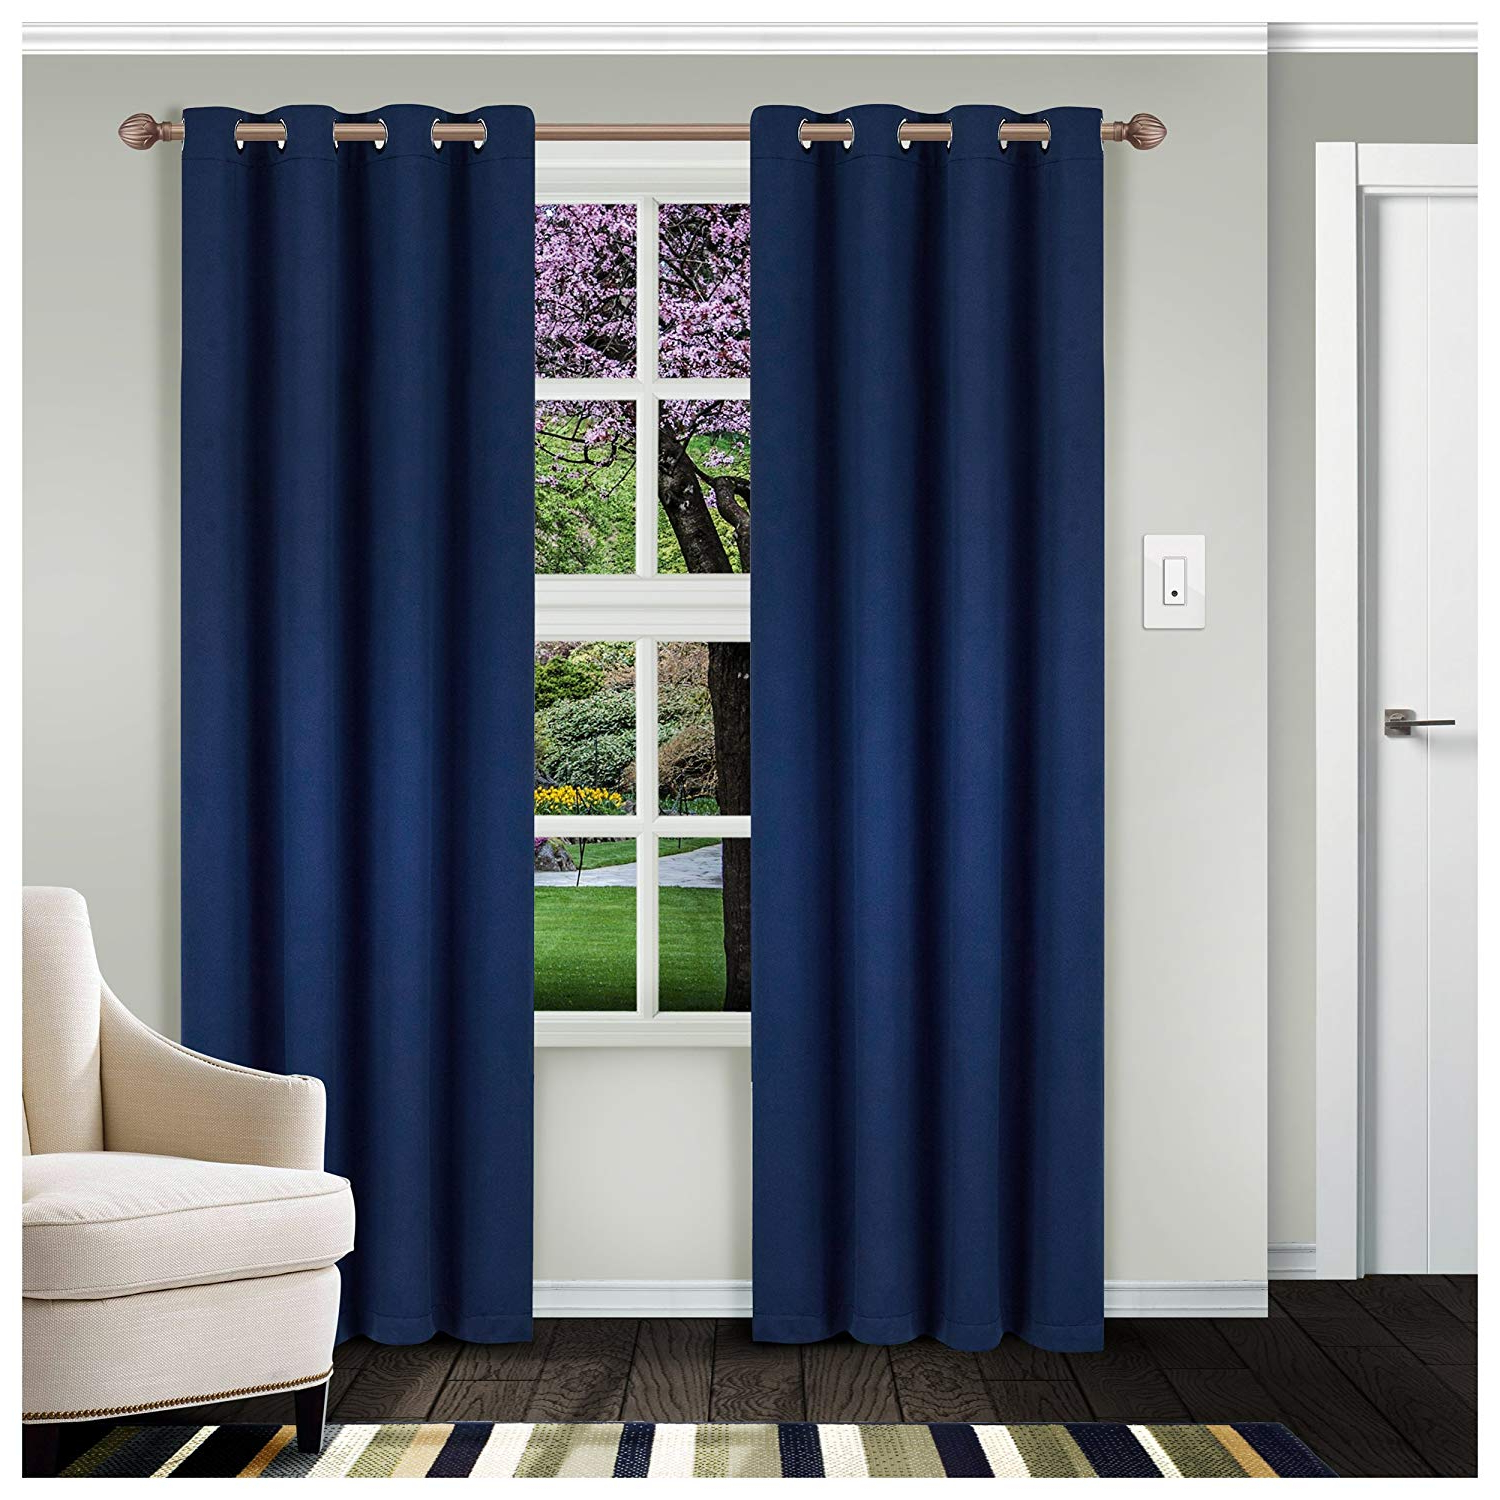 Solid Insulated Thermal Blackout Long Length Curtain Panel Pairs Throughout Popular Superior Solid Blackout Curtain Set Of 2, Thermal Insulated Panel Pair With Grommet Top Header, Elegant Solid Room Darkening Drapes, Available In (View 7 of 20)